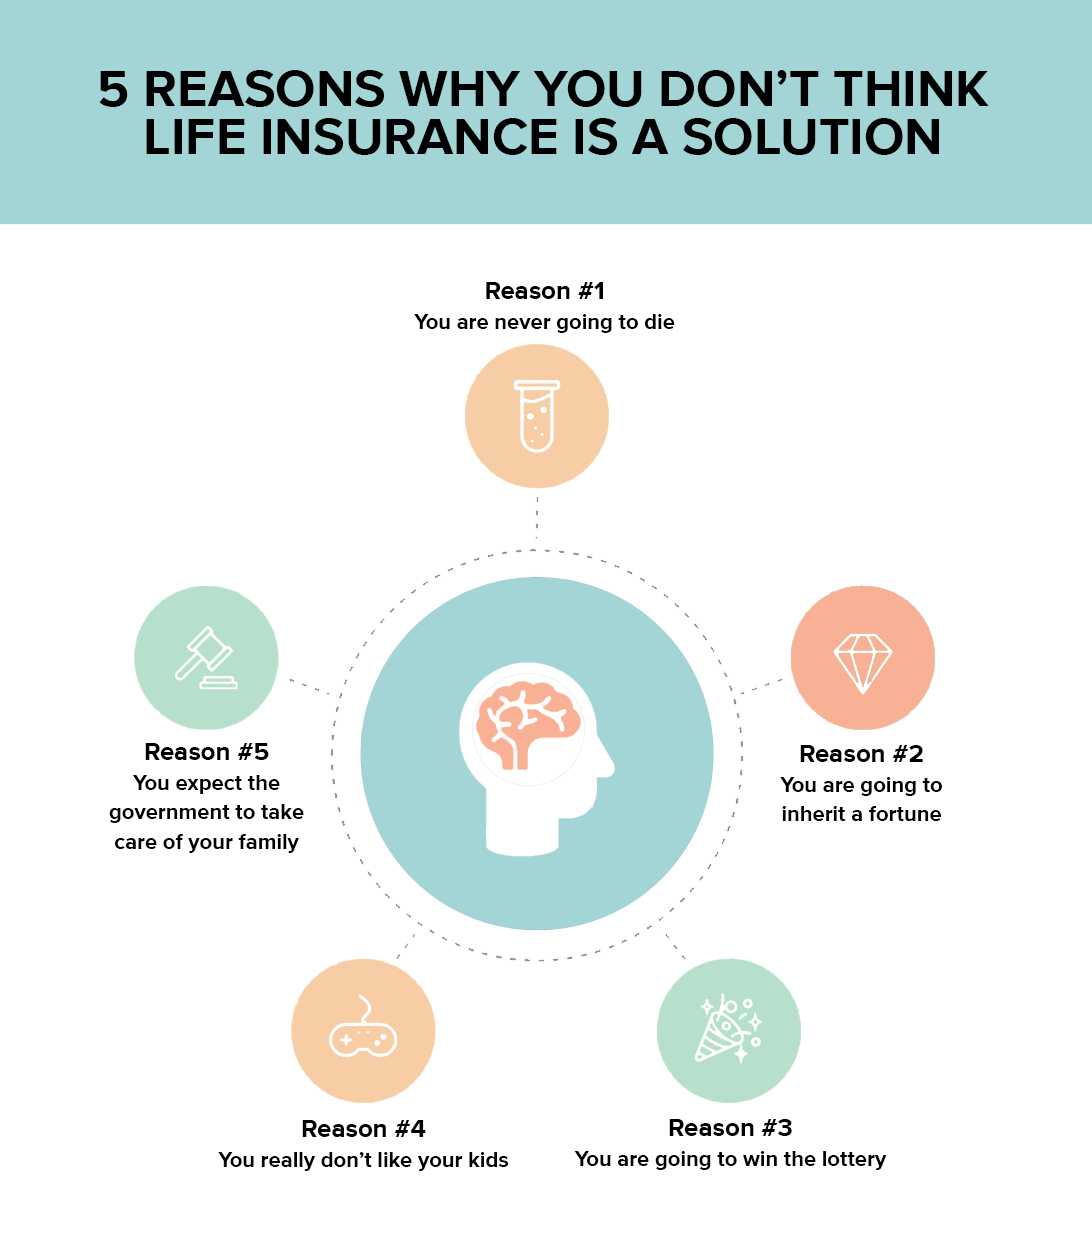 5 Reasons why you don't think life insurance is a solution